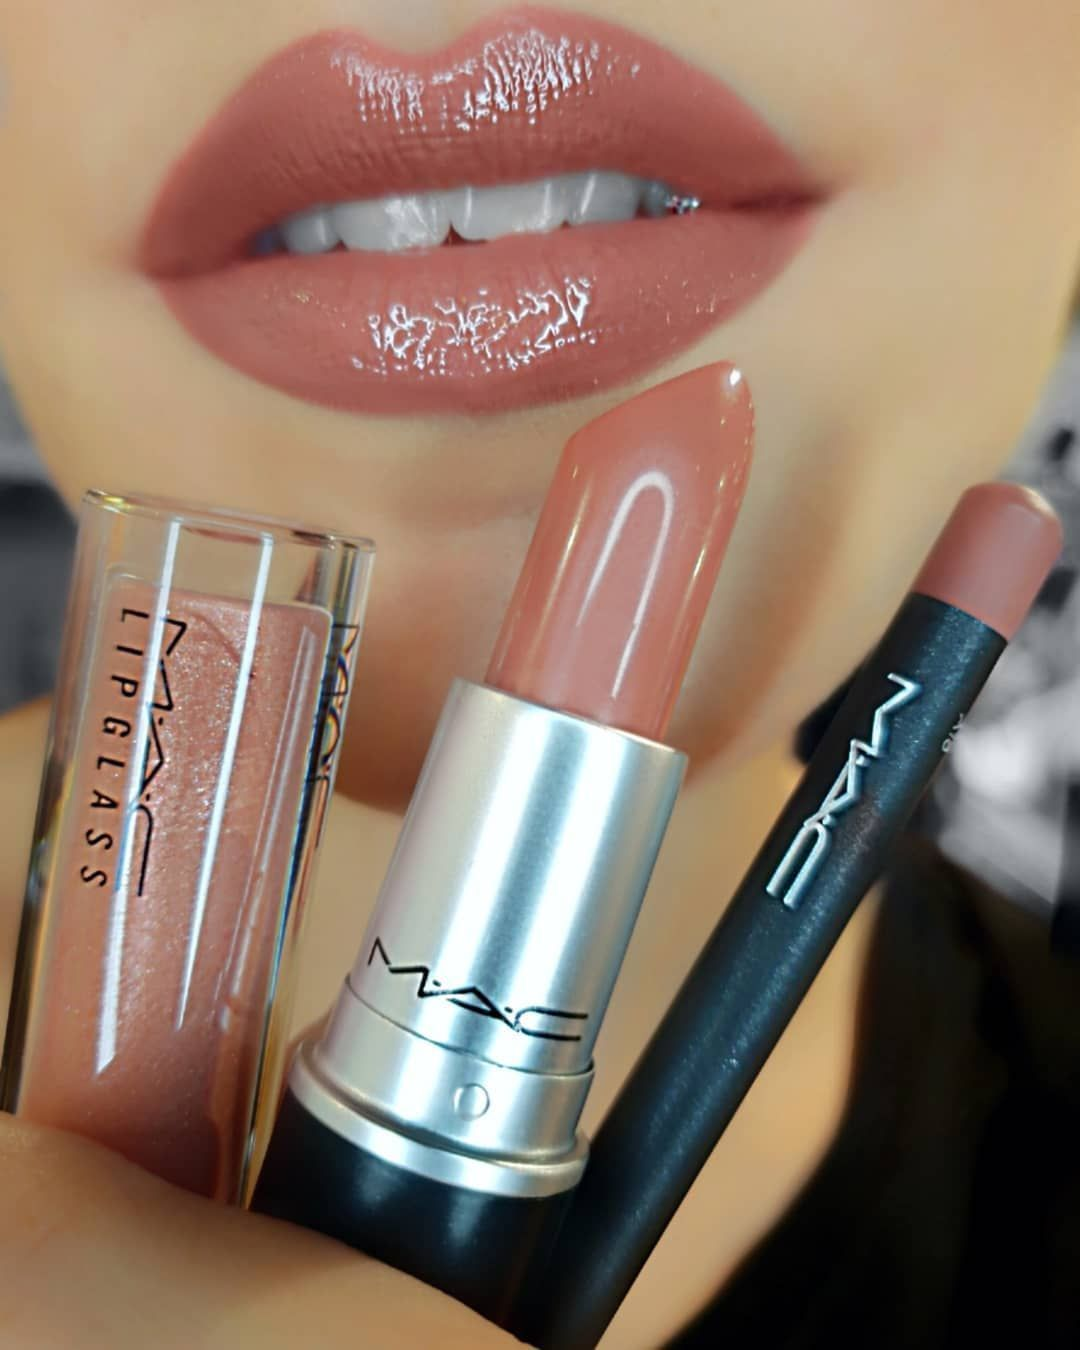 These 32 Gorgeous Mac Lipsticks Are Awesome - Hair and Beauty eye makeup Ideas T... - These 32 Gor